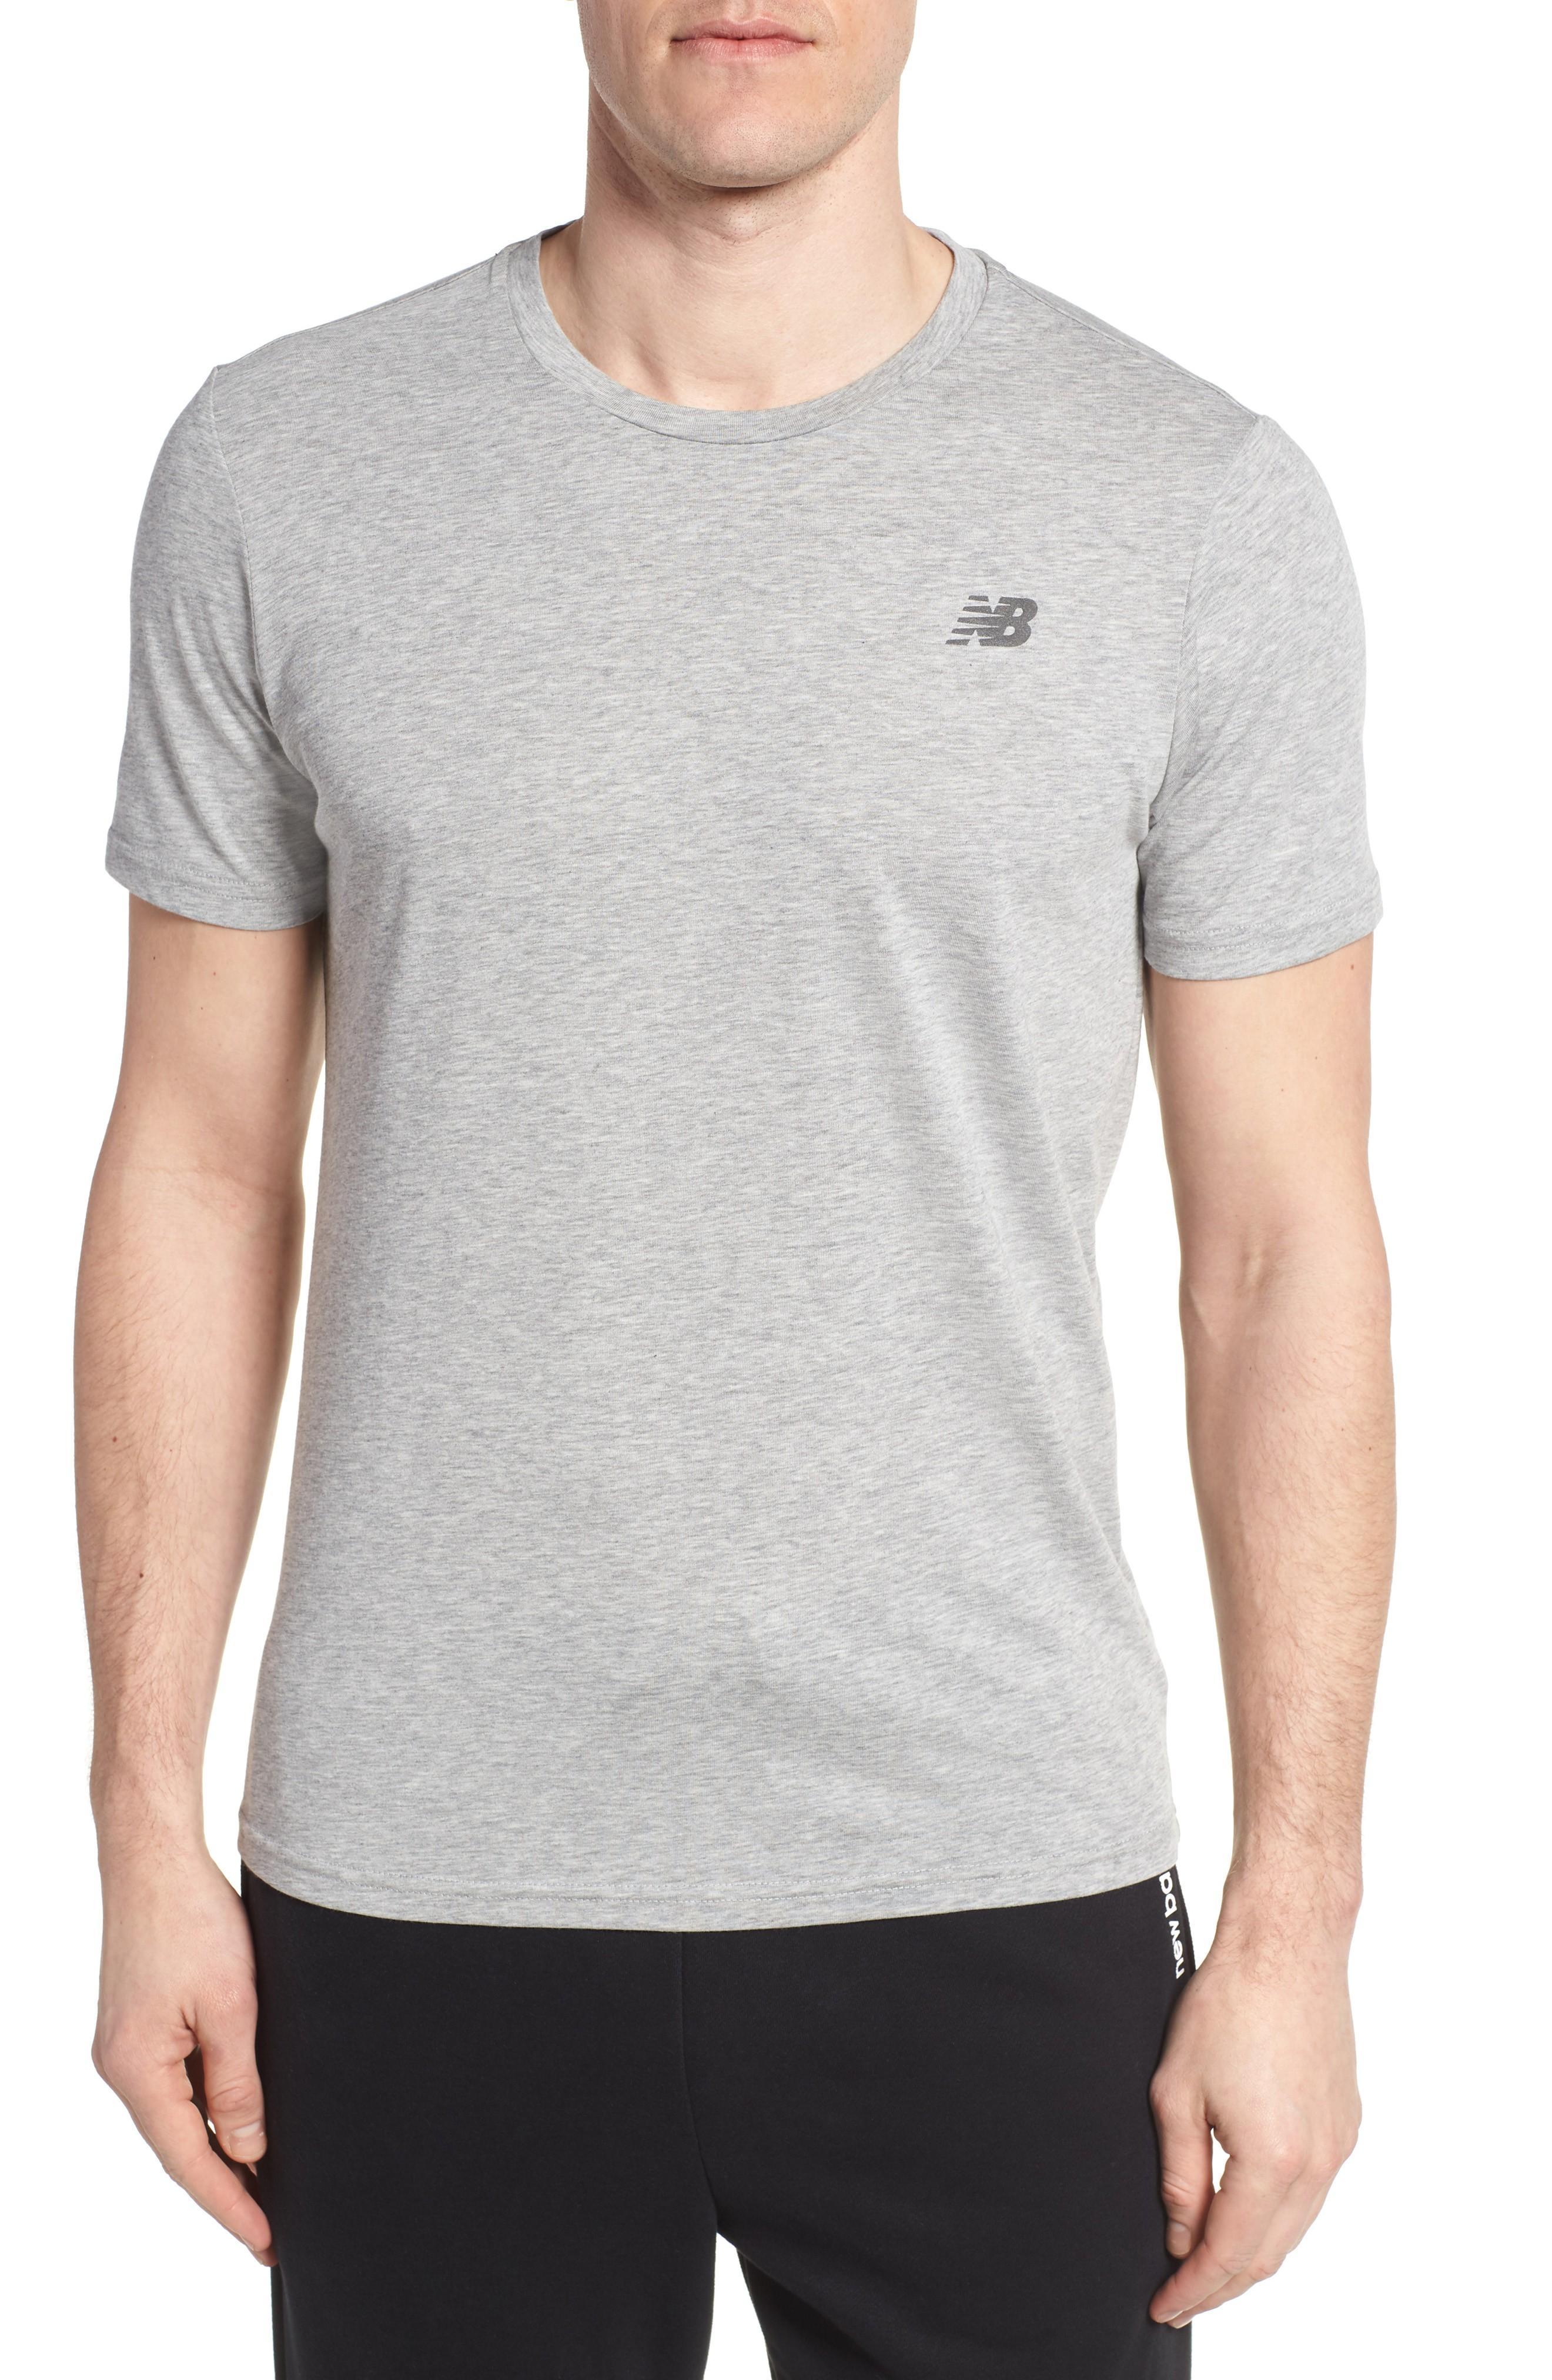 New Balance Heather Tech Crewneck T-shirt In Athletic Grey